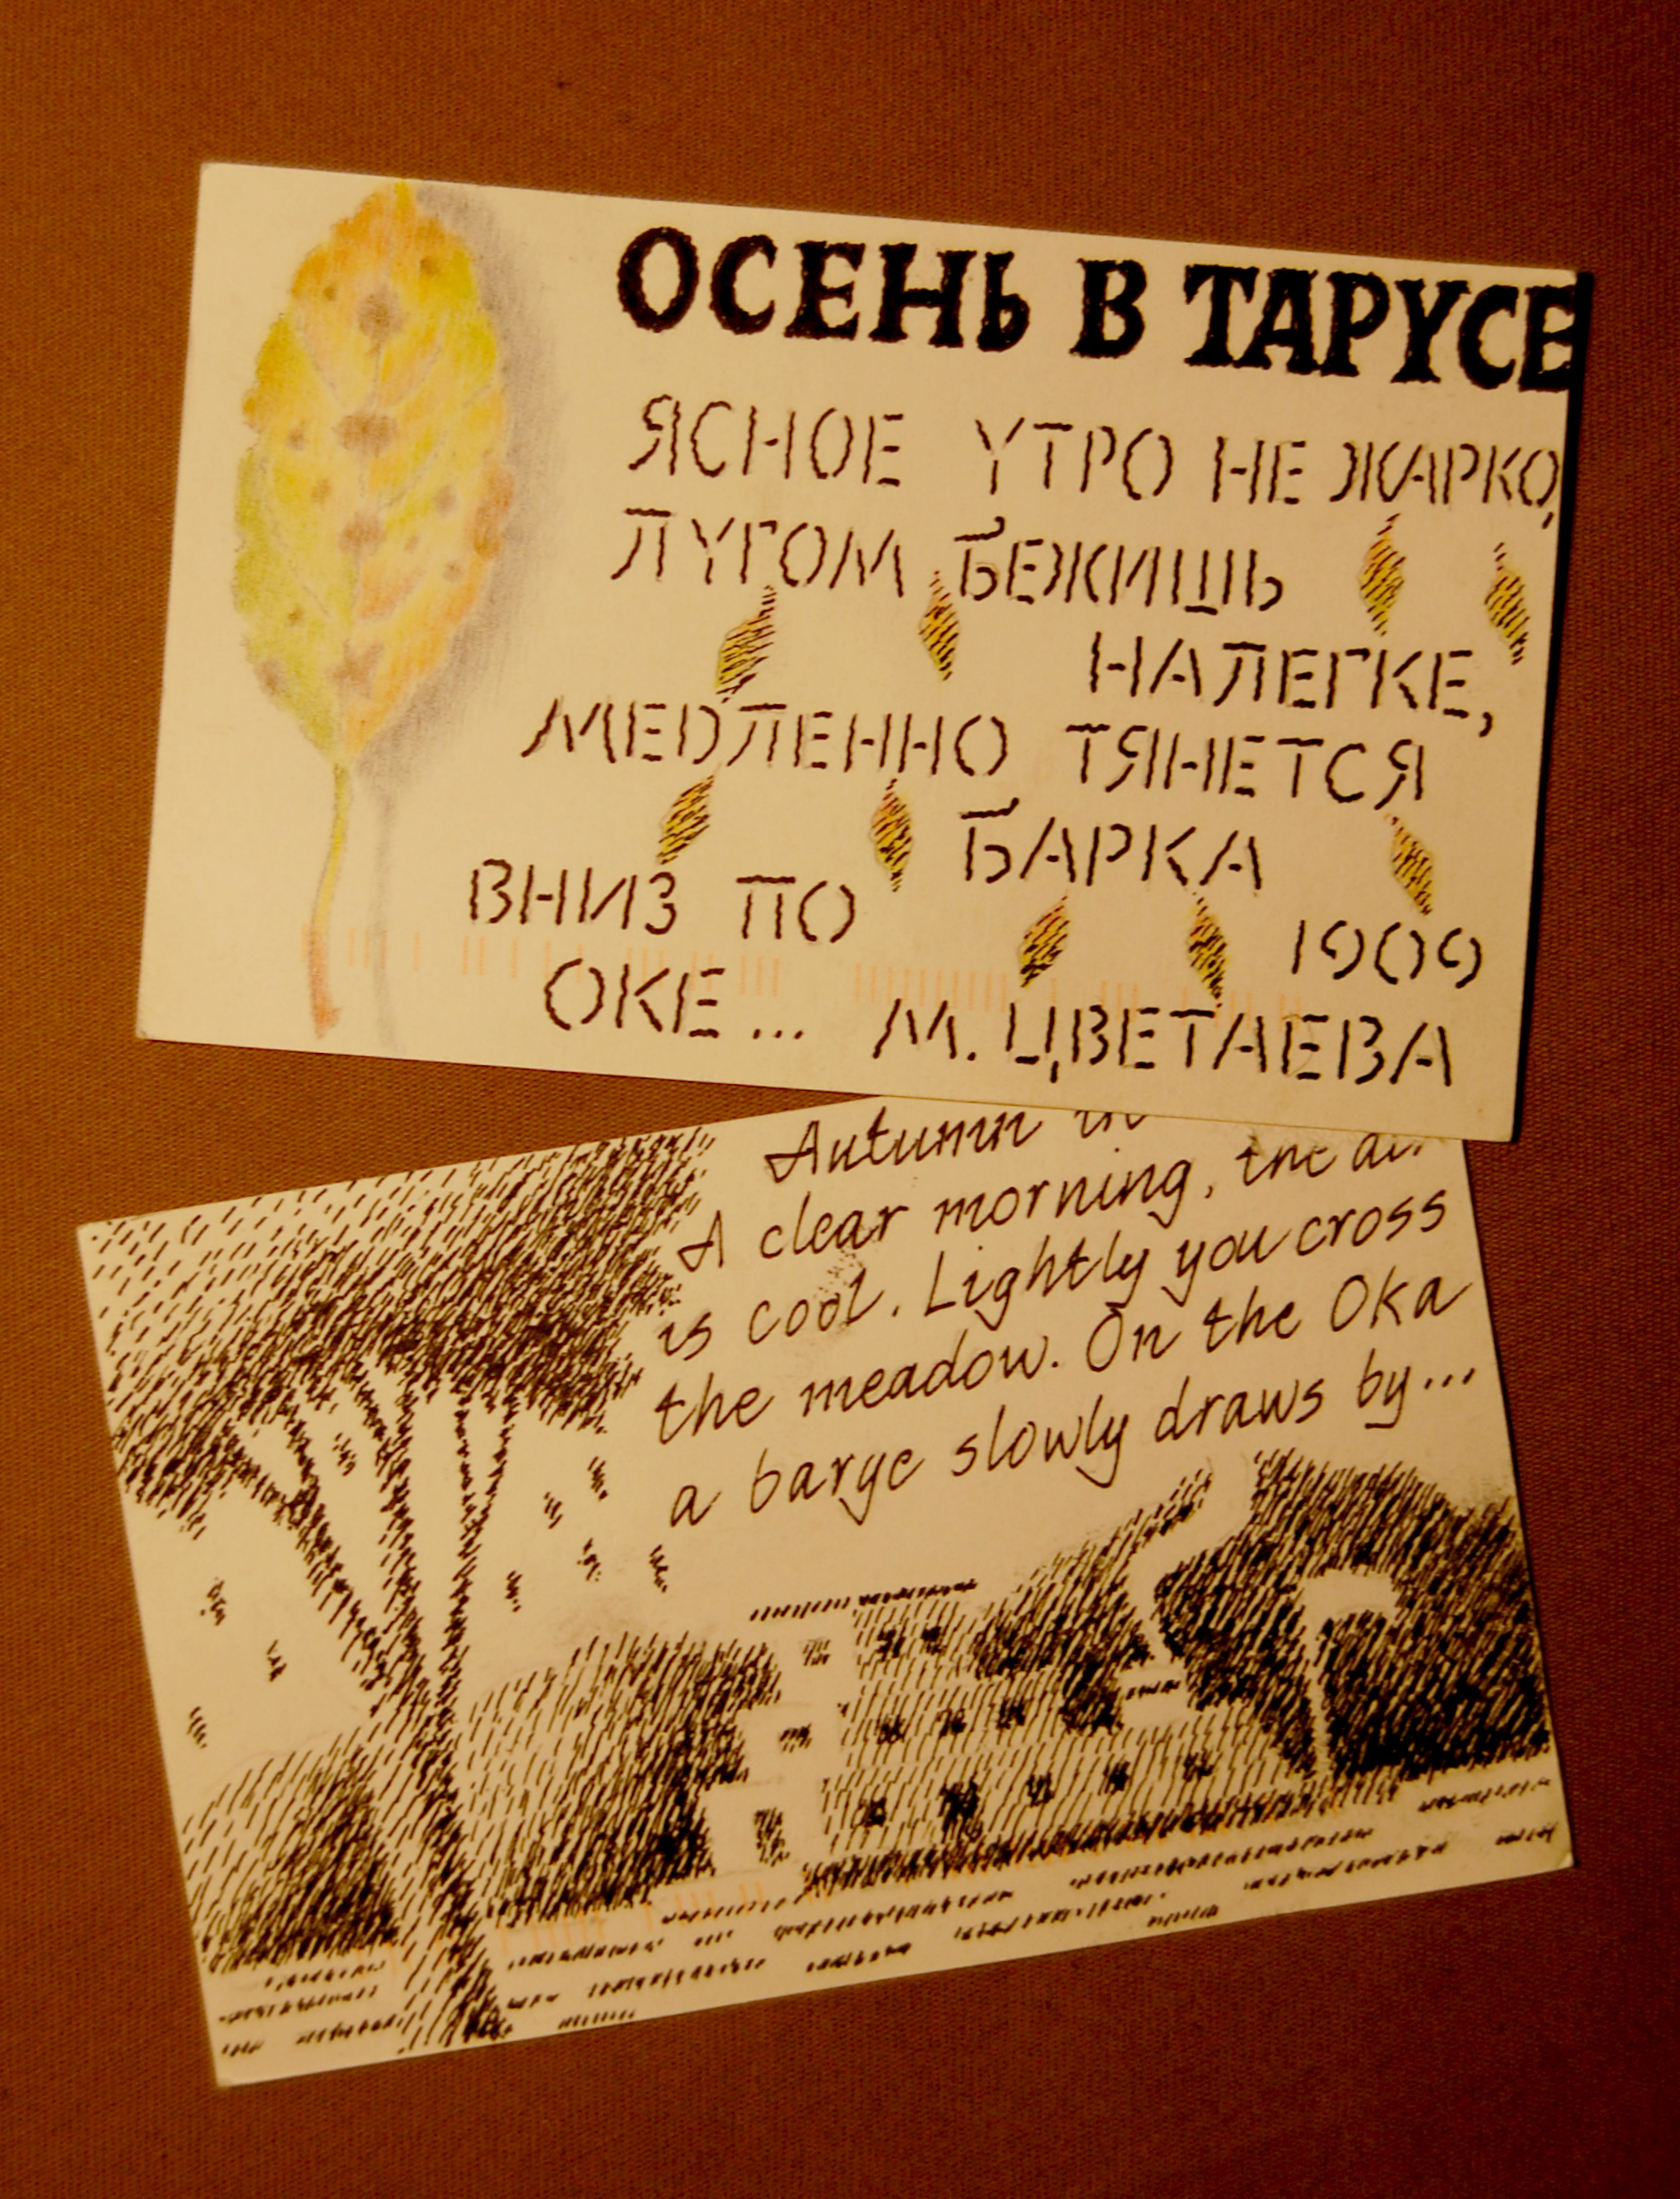 Autumn in Taurus 1 (Russian and English) - Postcards 3 & 4, B Sides